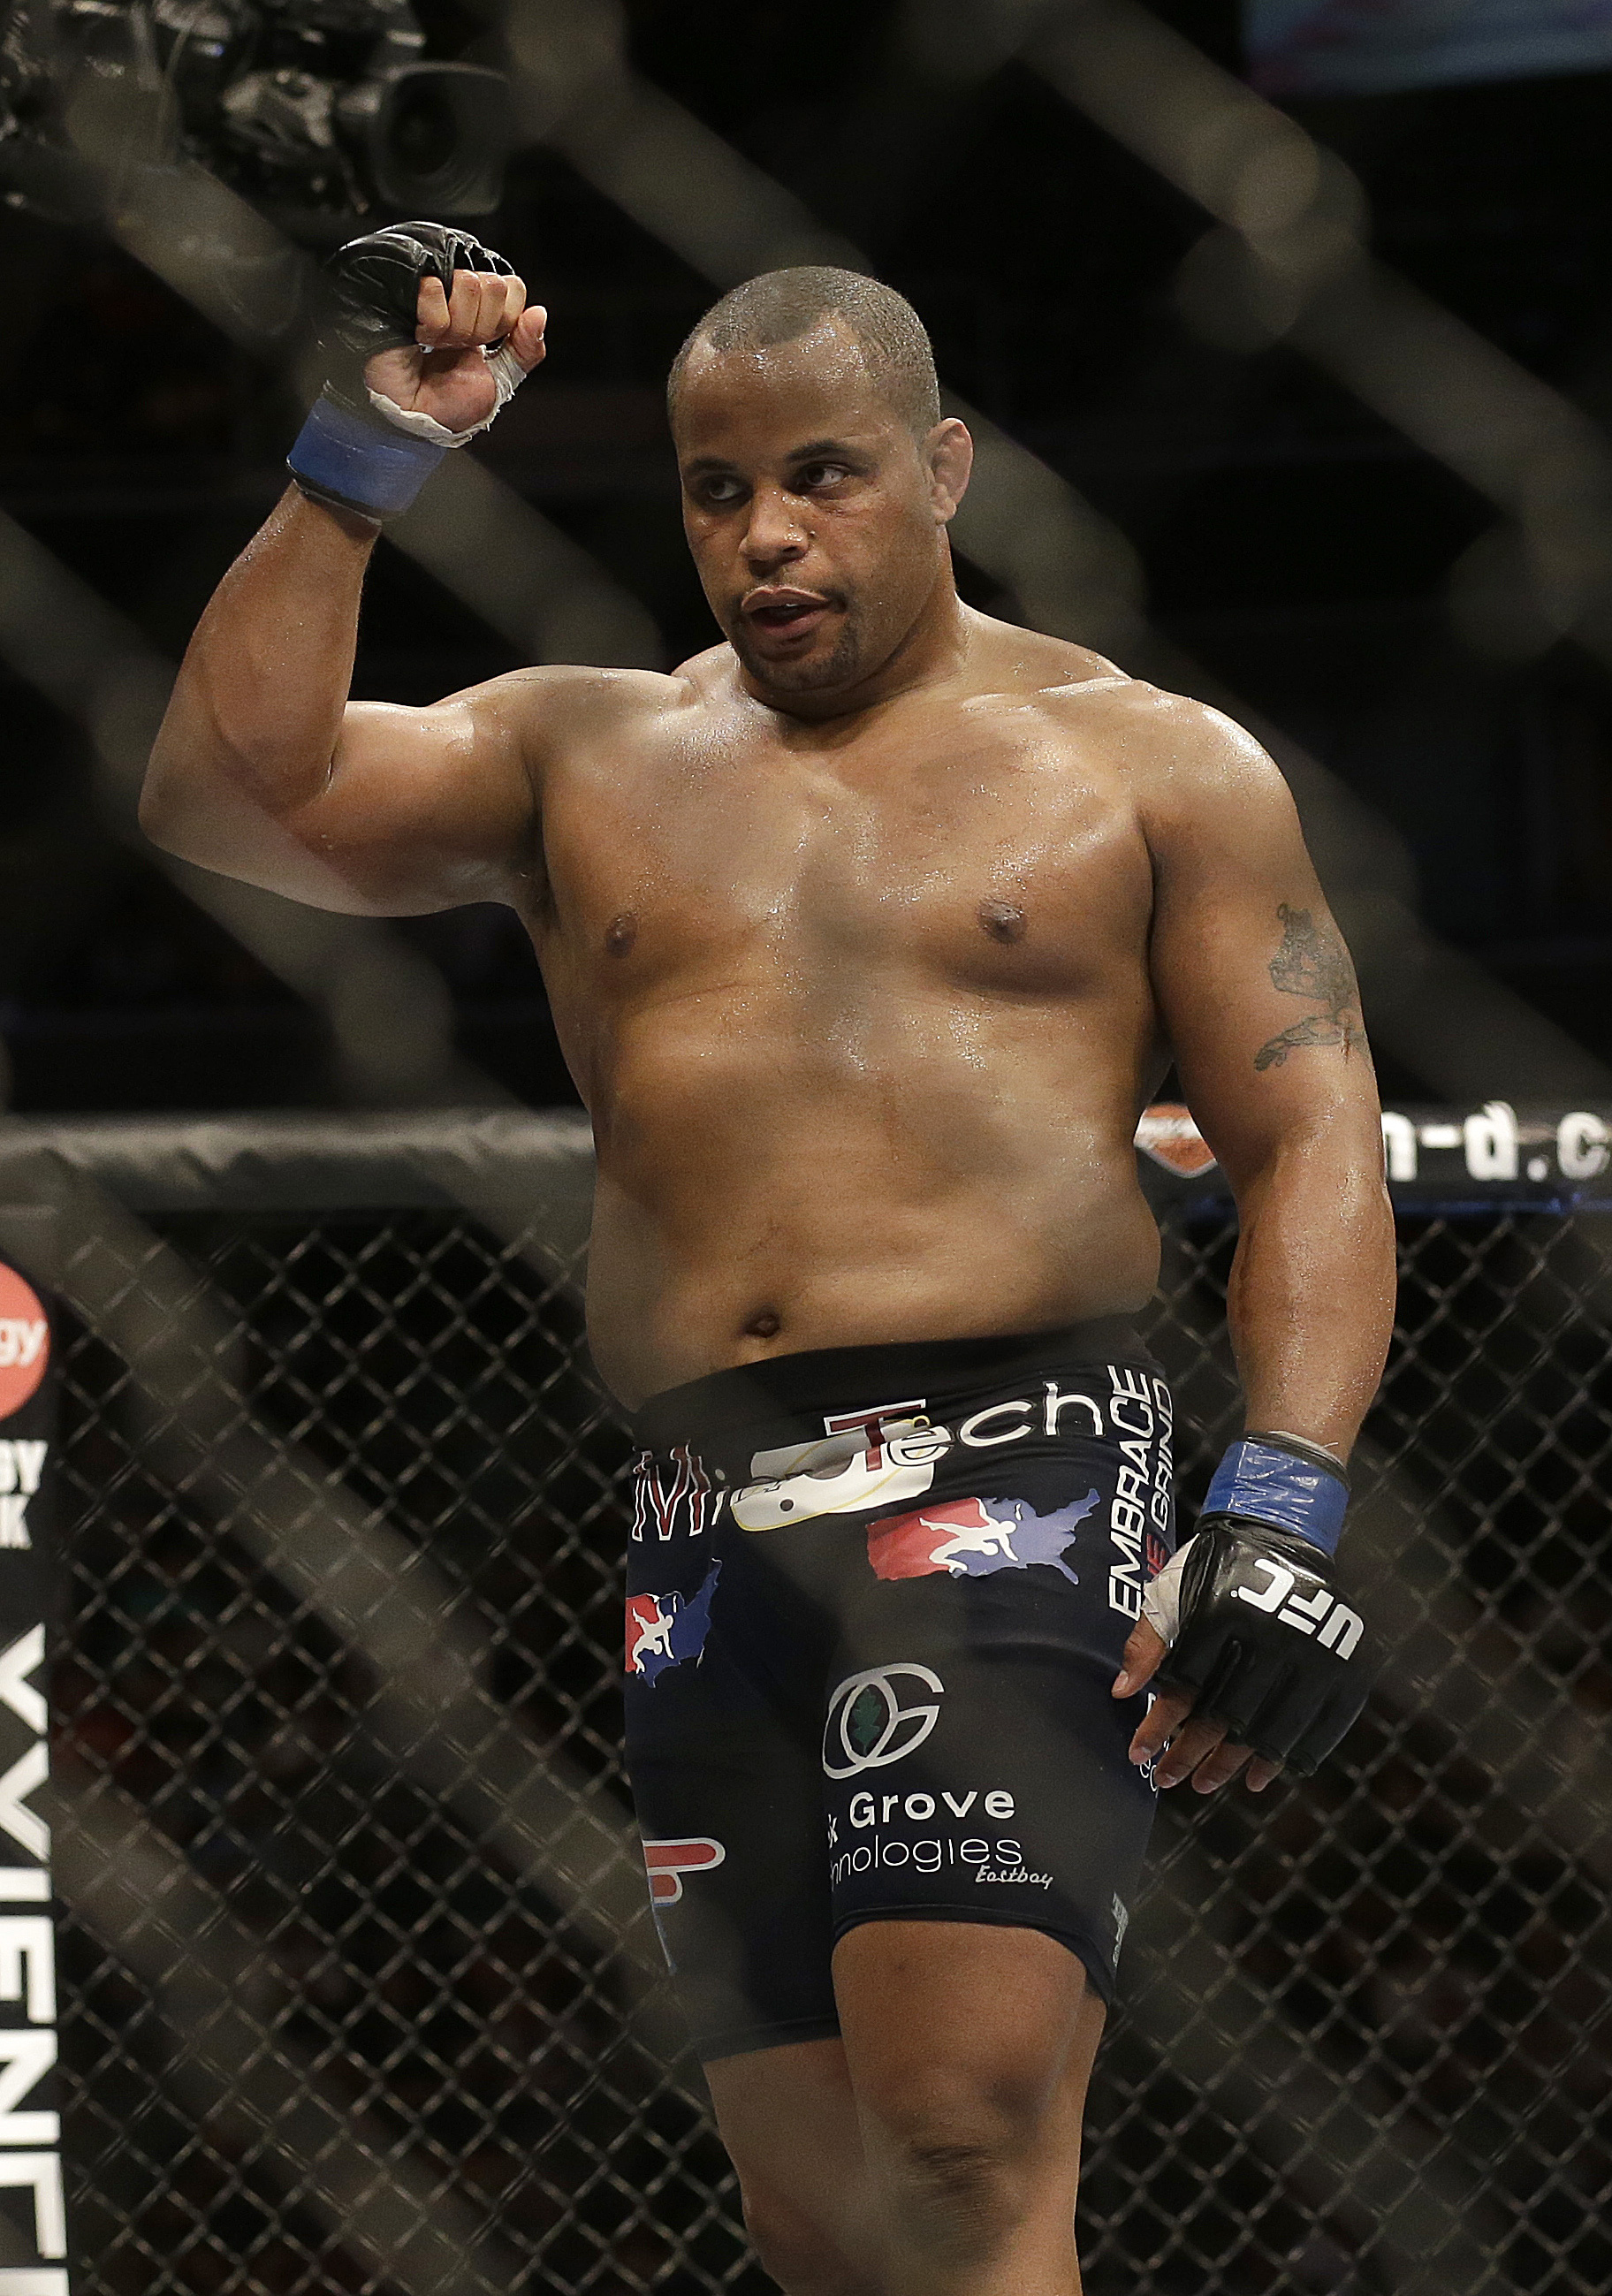 Competition Drives Ufc Light Heavyweight Champion Daniel